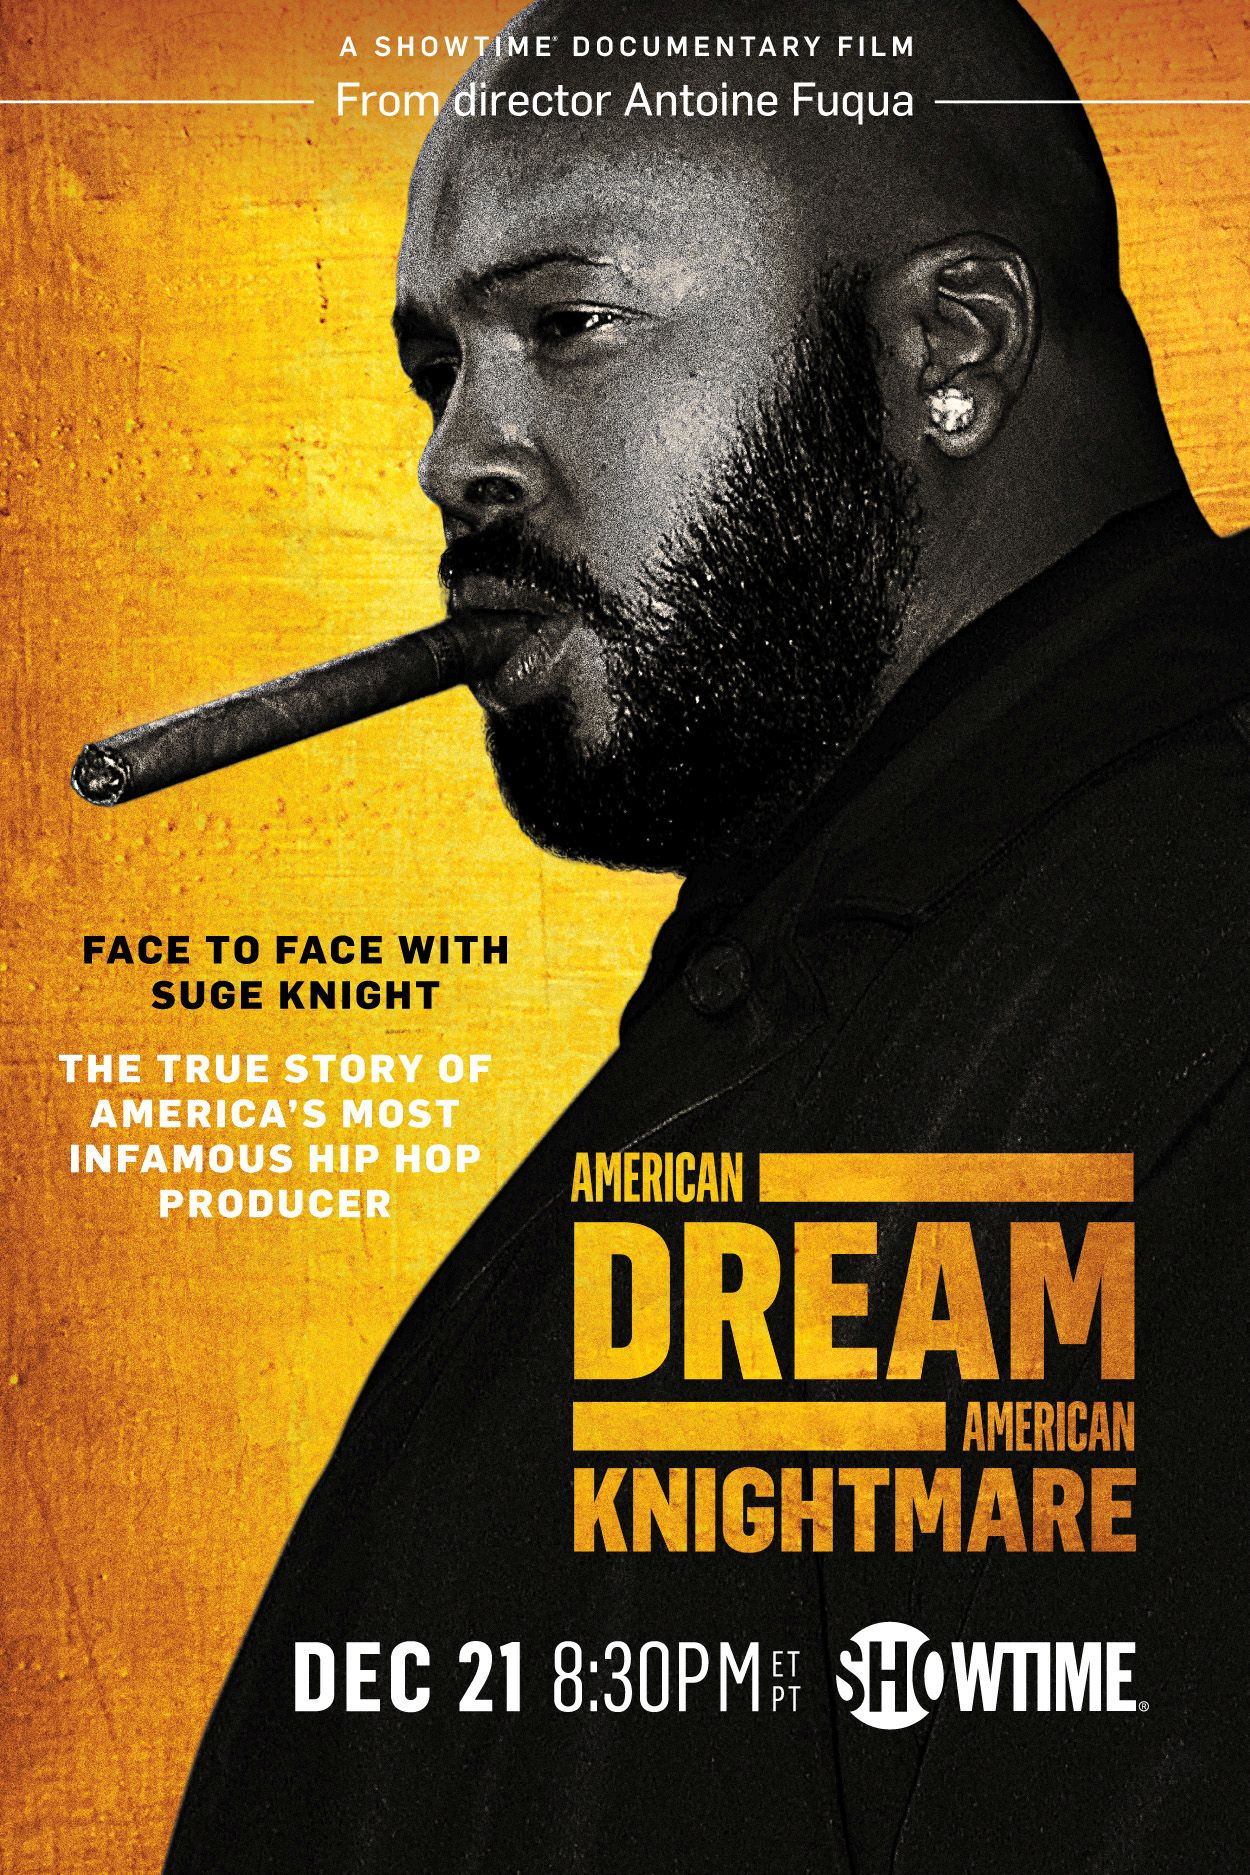 Poster for Suge Knight: American Dream/American Knightmare. PHOTO: SHOWTIME